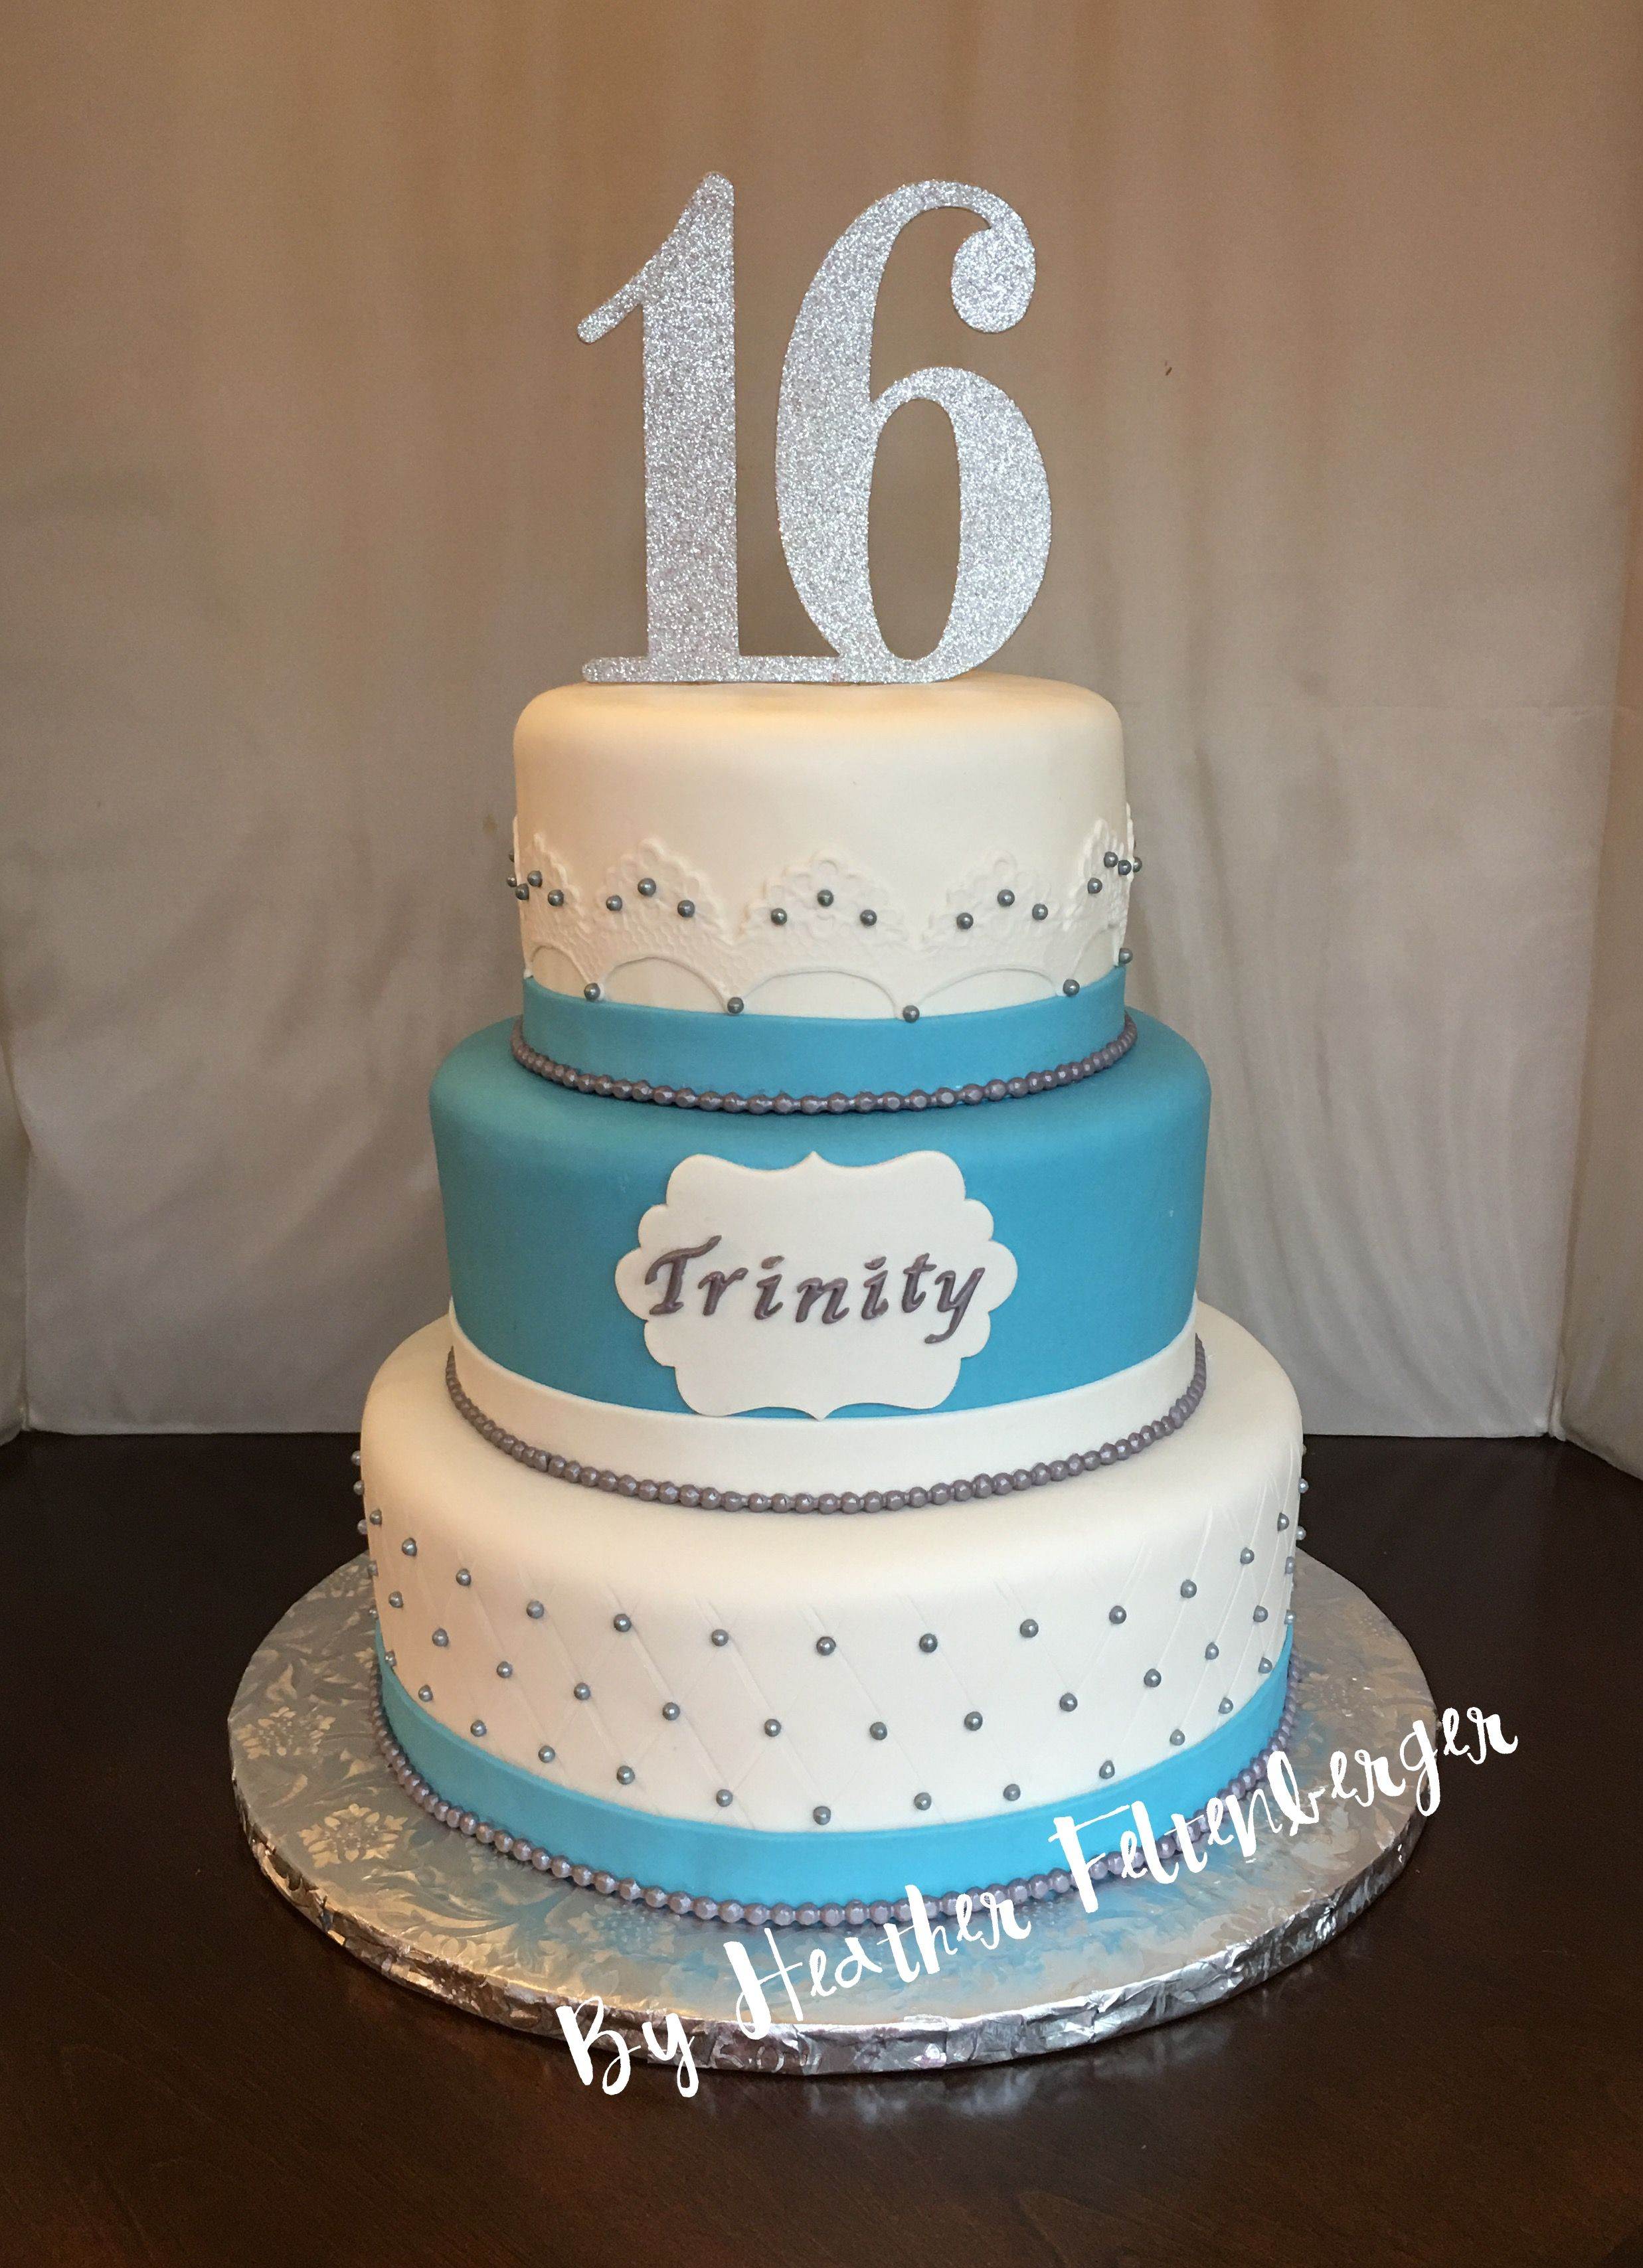 Turquoise Birthday Cake 3 Tier Sweet 16 Birthday Cake Turquoise Teal And White Quilted And